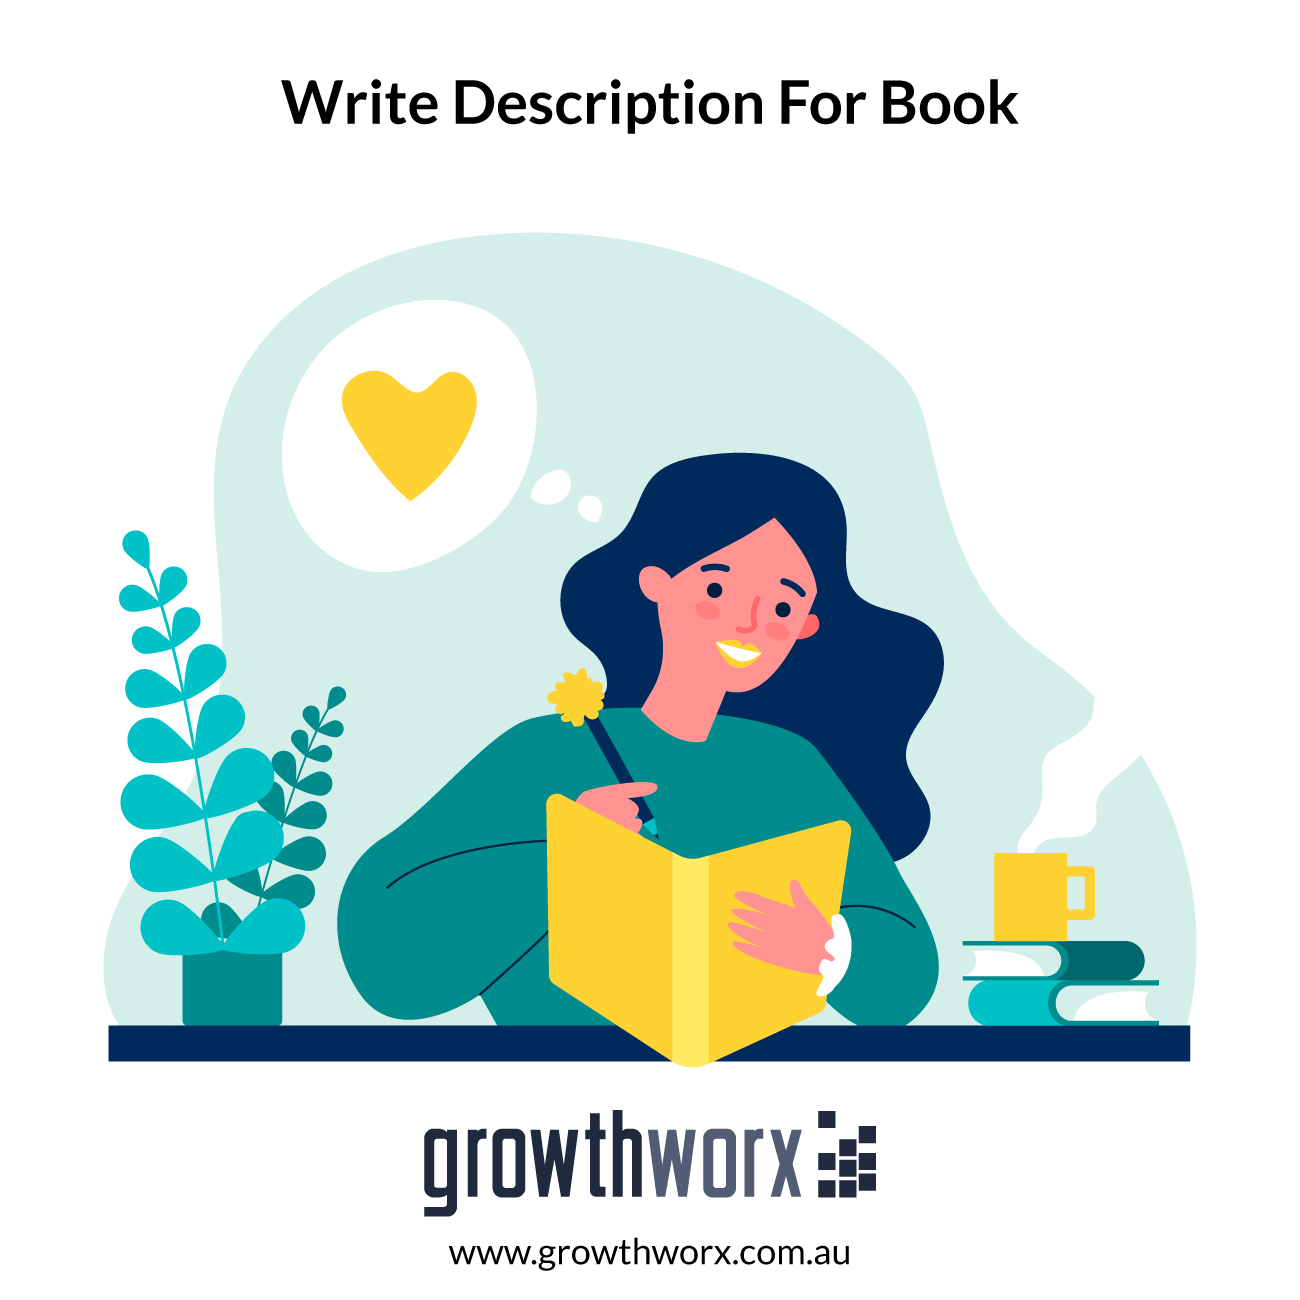 I will write a great description for your book which will sell it 1